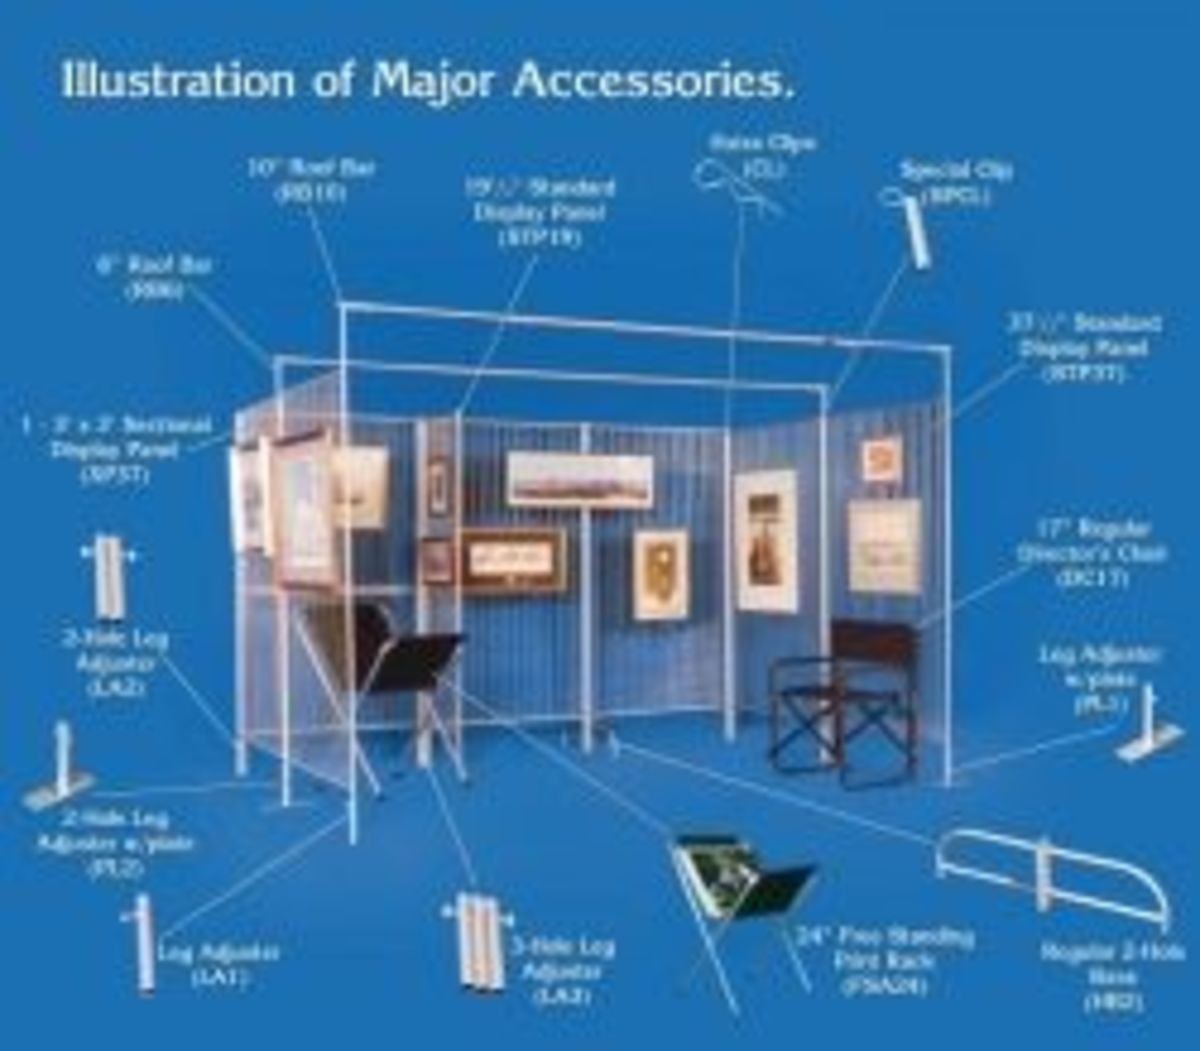 Example Of Accessories Available From Graphic Displays